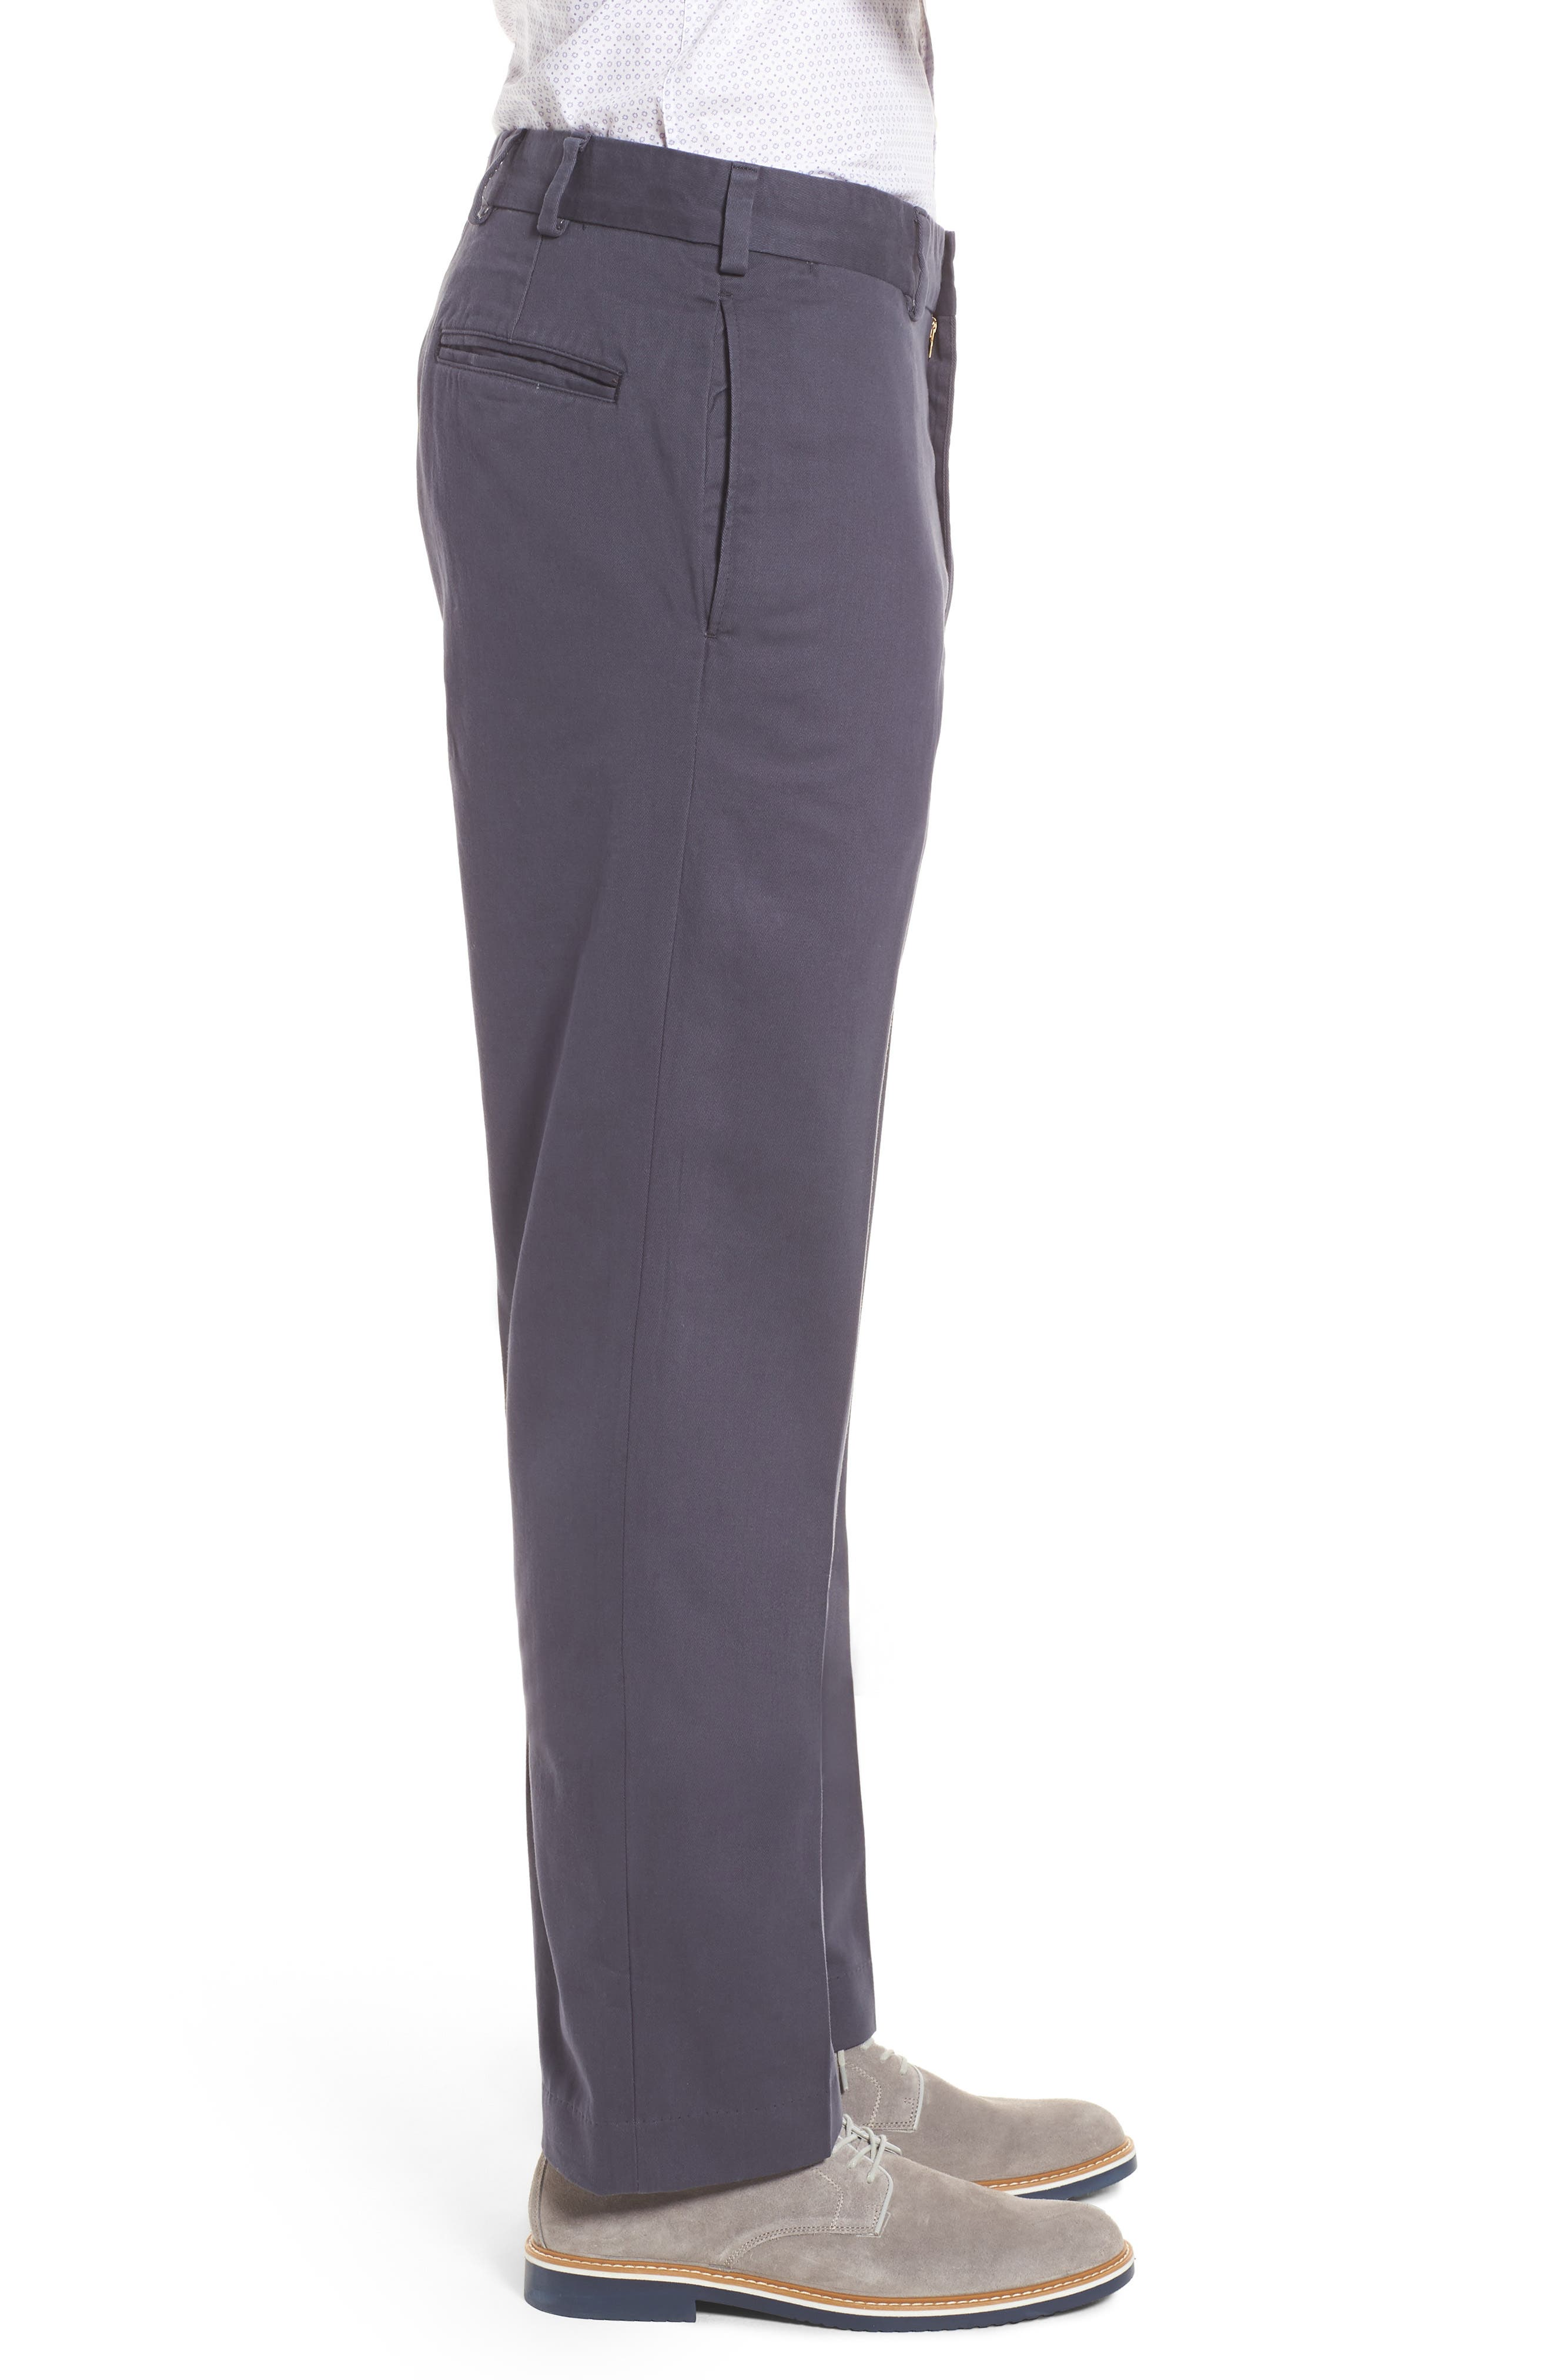 M2 Classic Fit Flat Front Vintage Twill Pants,                             Alternate thumbnail 3, color,                             Navy